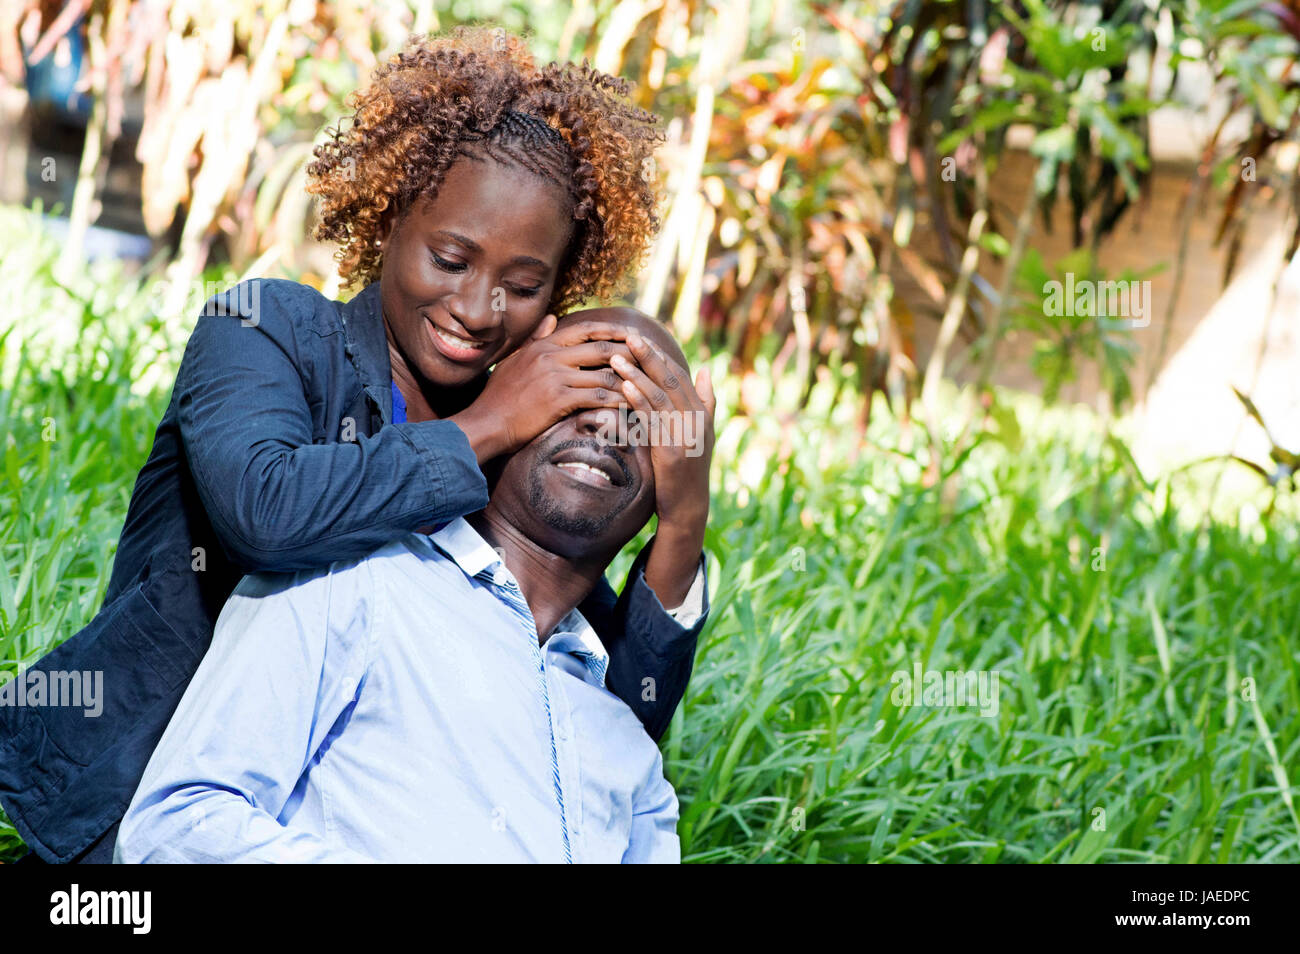 young woman played the guessing game with her lover in him closing his eyes. - Stock Image